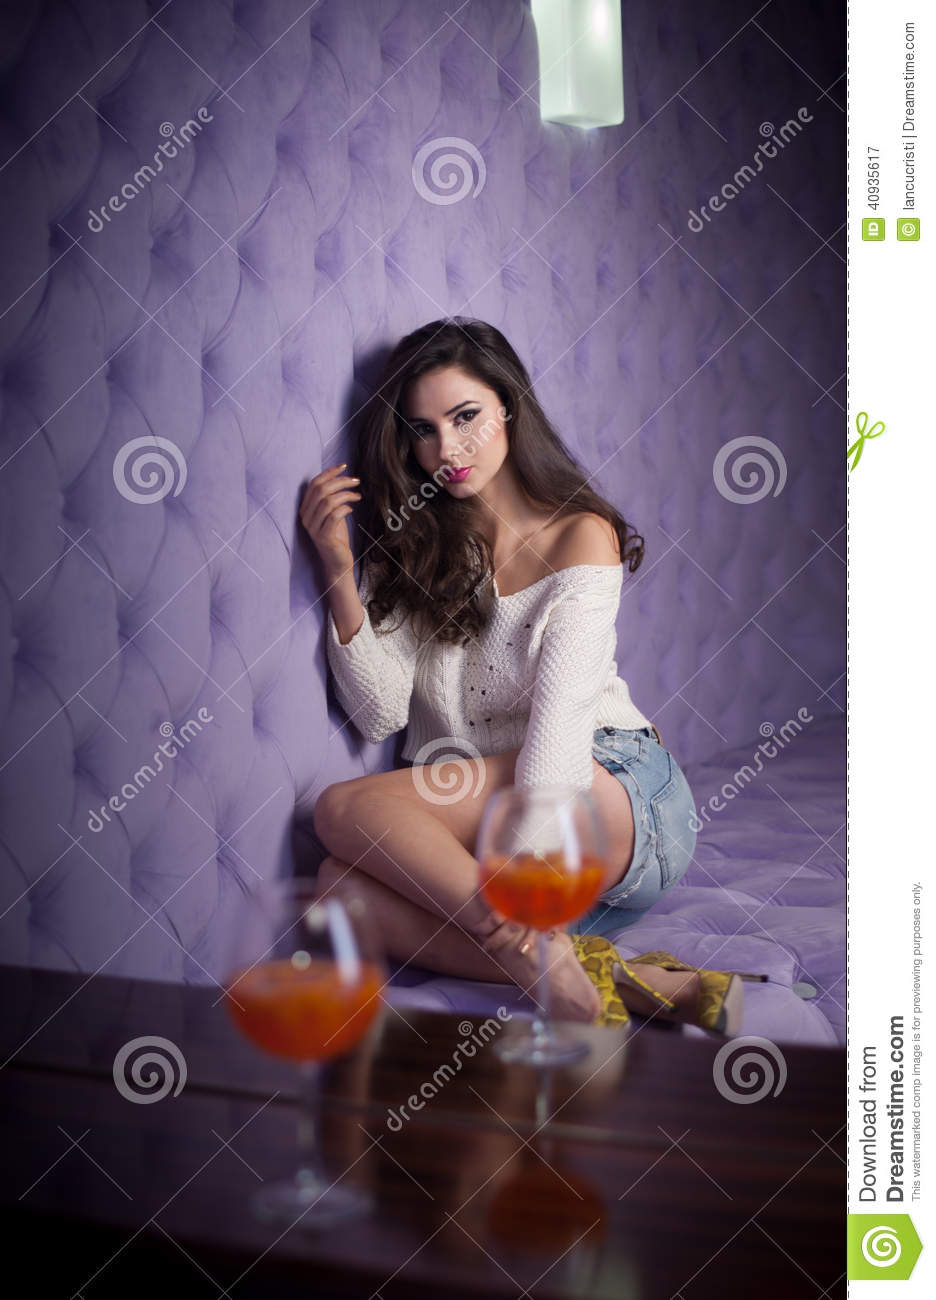 Beautiful brunette girl in denim shorts and white blouse posing on lilac textured background with two drink glasses foreground